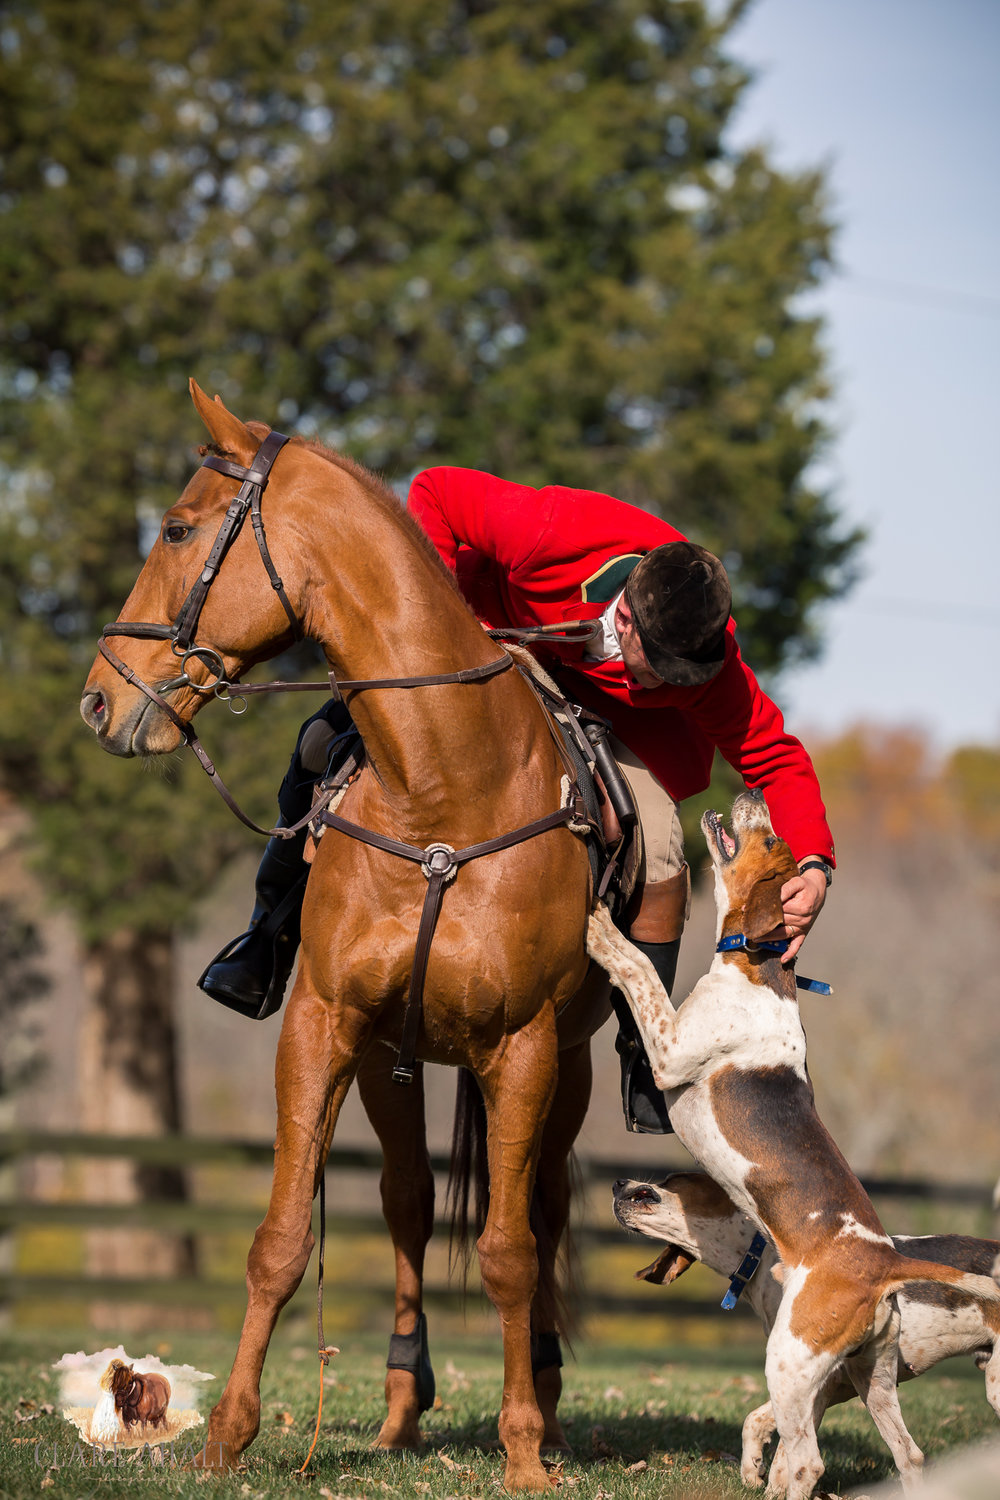 Best_Equestrian_Photographer_Maryland_equine_photographer_northern_virginia_equestrian_Photographer-47.jpg